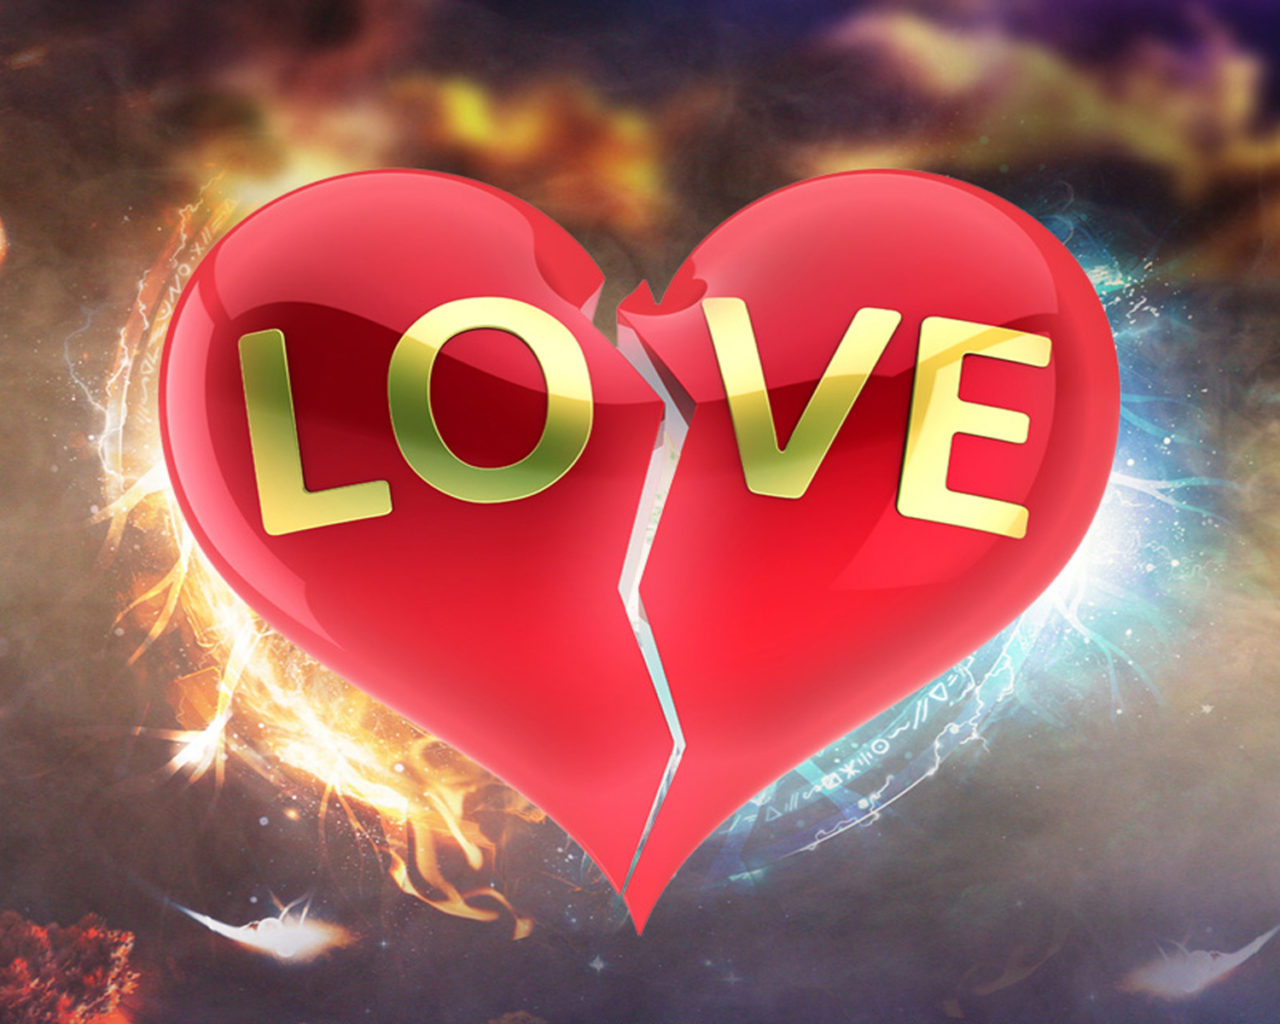 Free Wallpapers Wid Quotes Love 367a Wallpapers13 Com